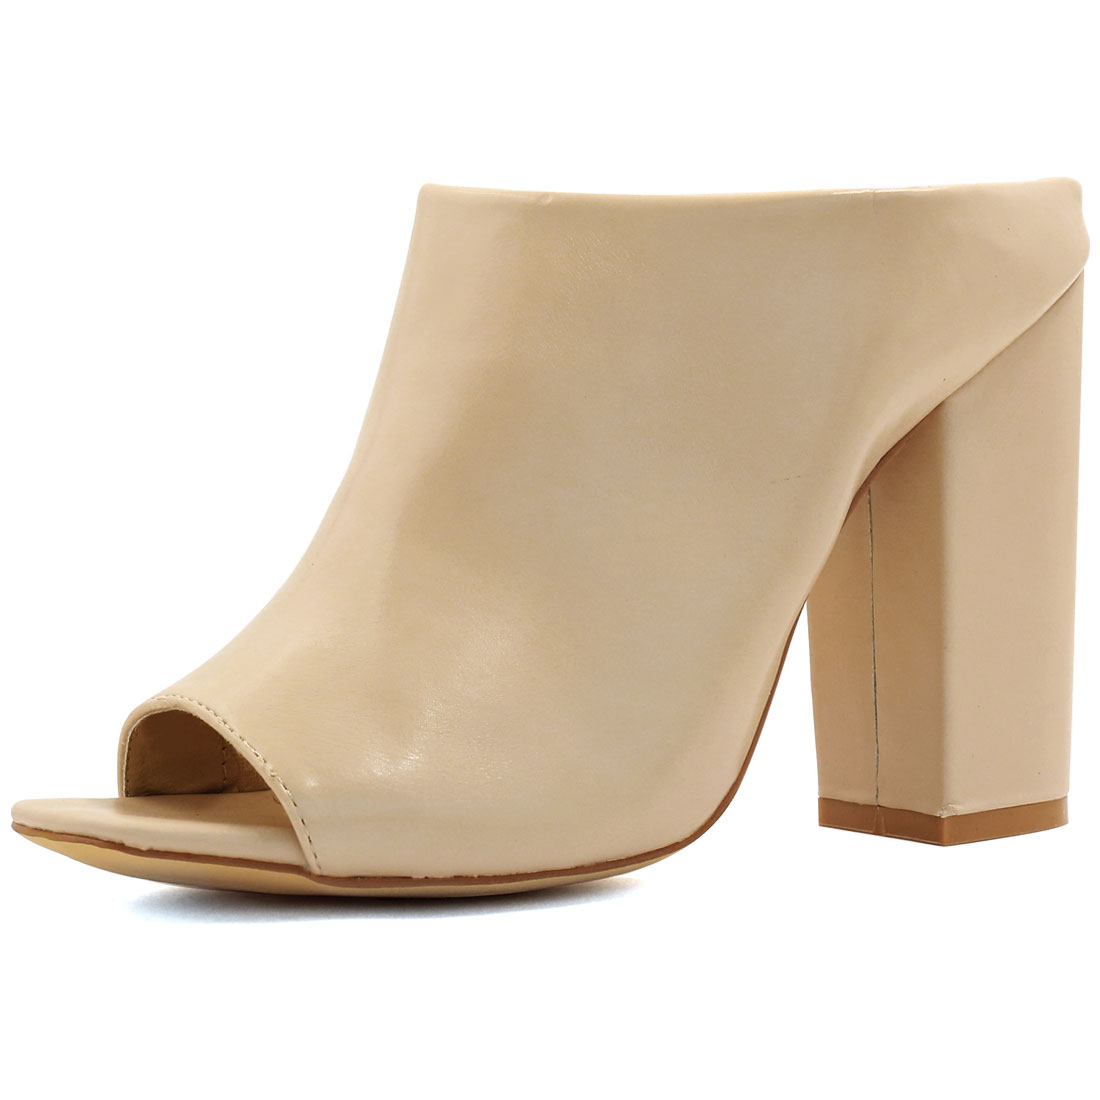 Woman Square Peep Toe Slip On Chunky High Heel Mules Beige US 6.5